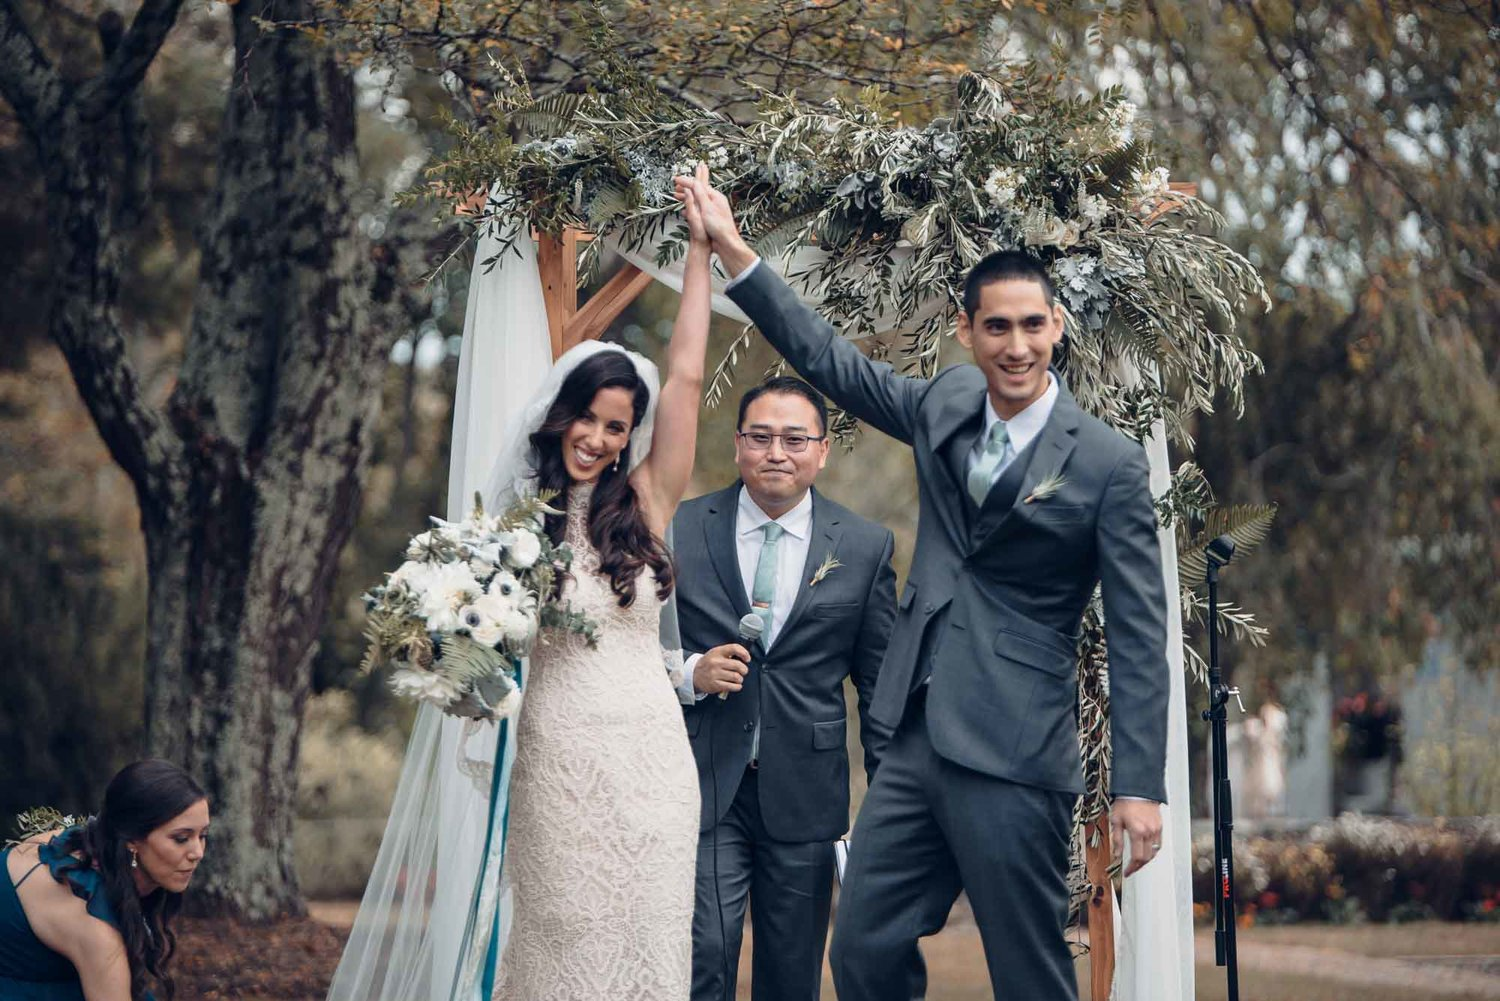 Woodstock Connecticut wedding ceremony arbor chuppah draping greens blue white olive ferns.jpg